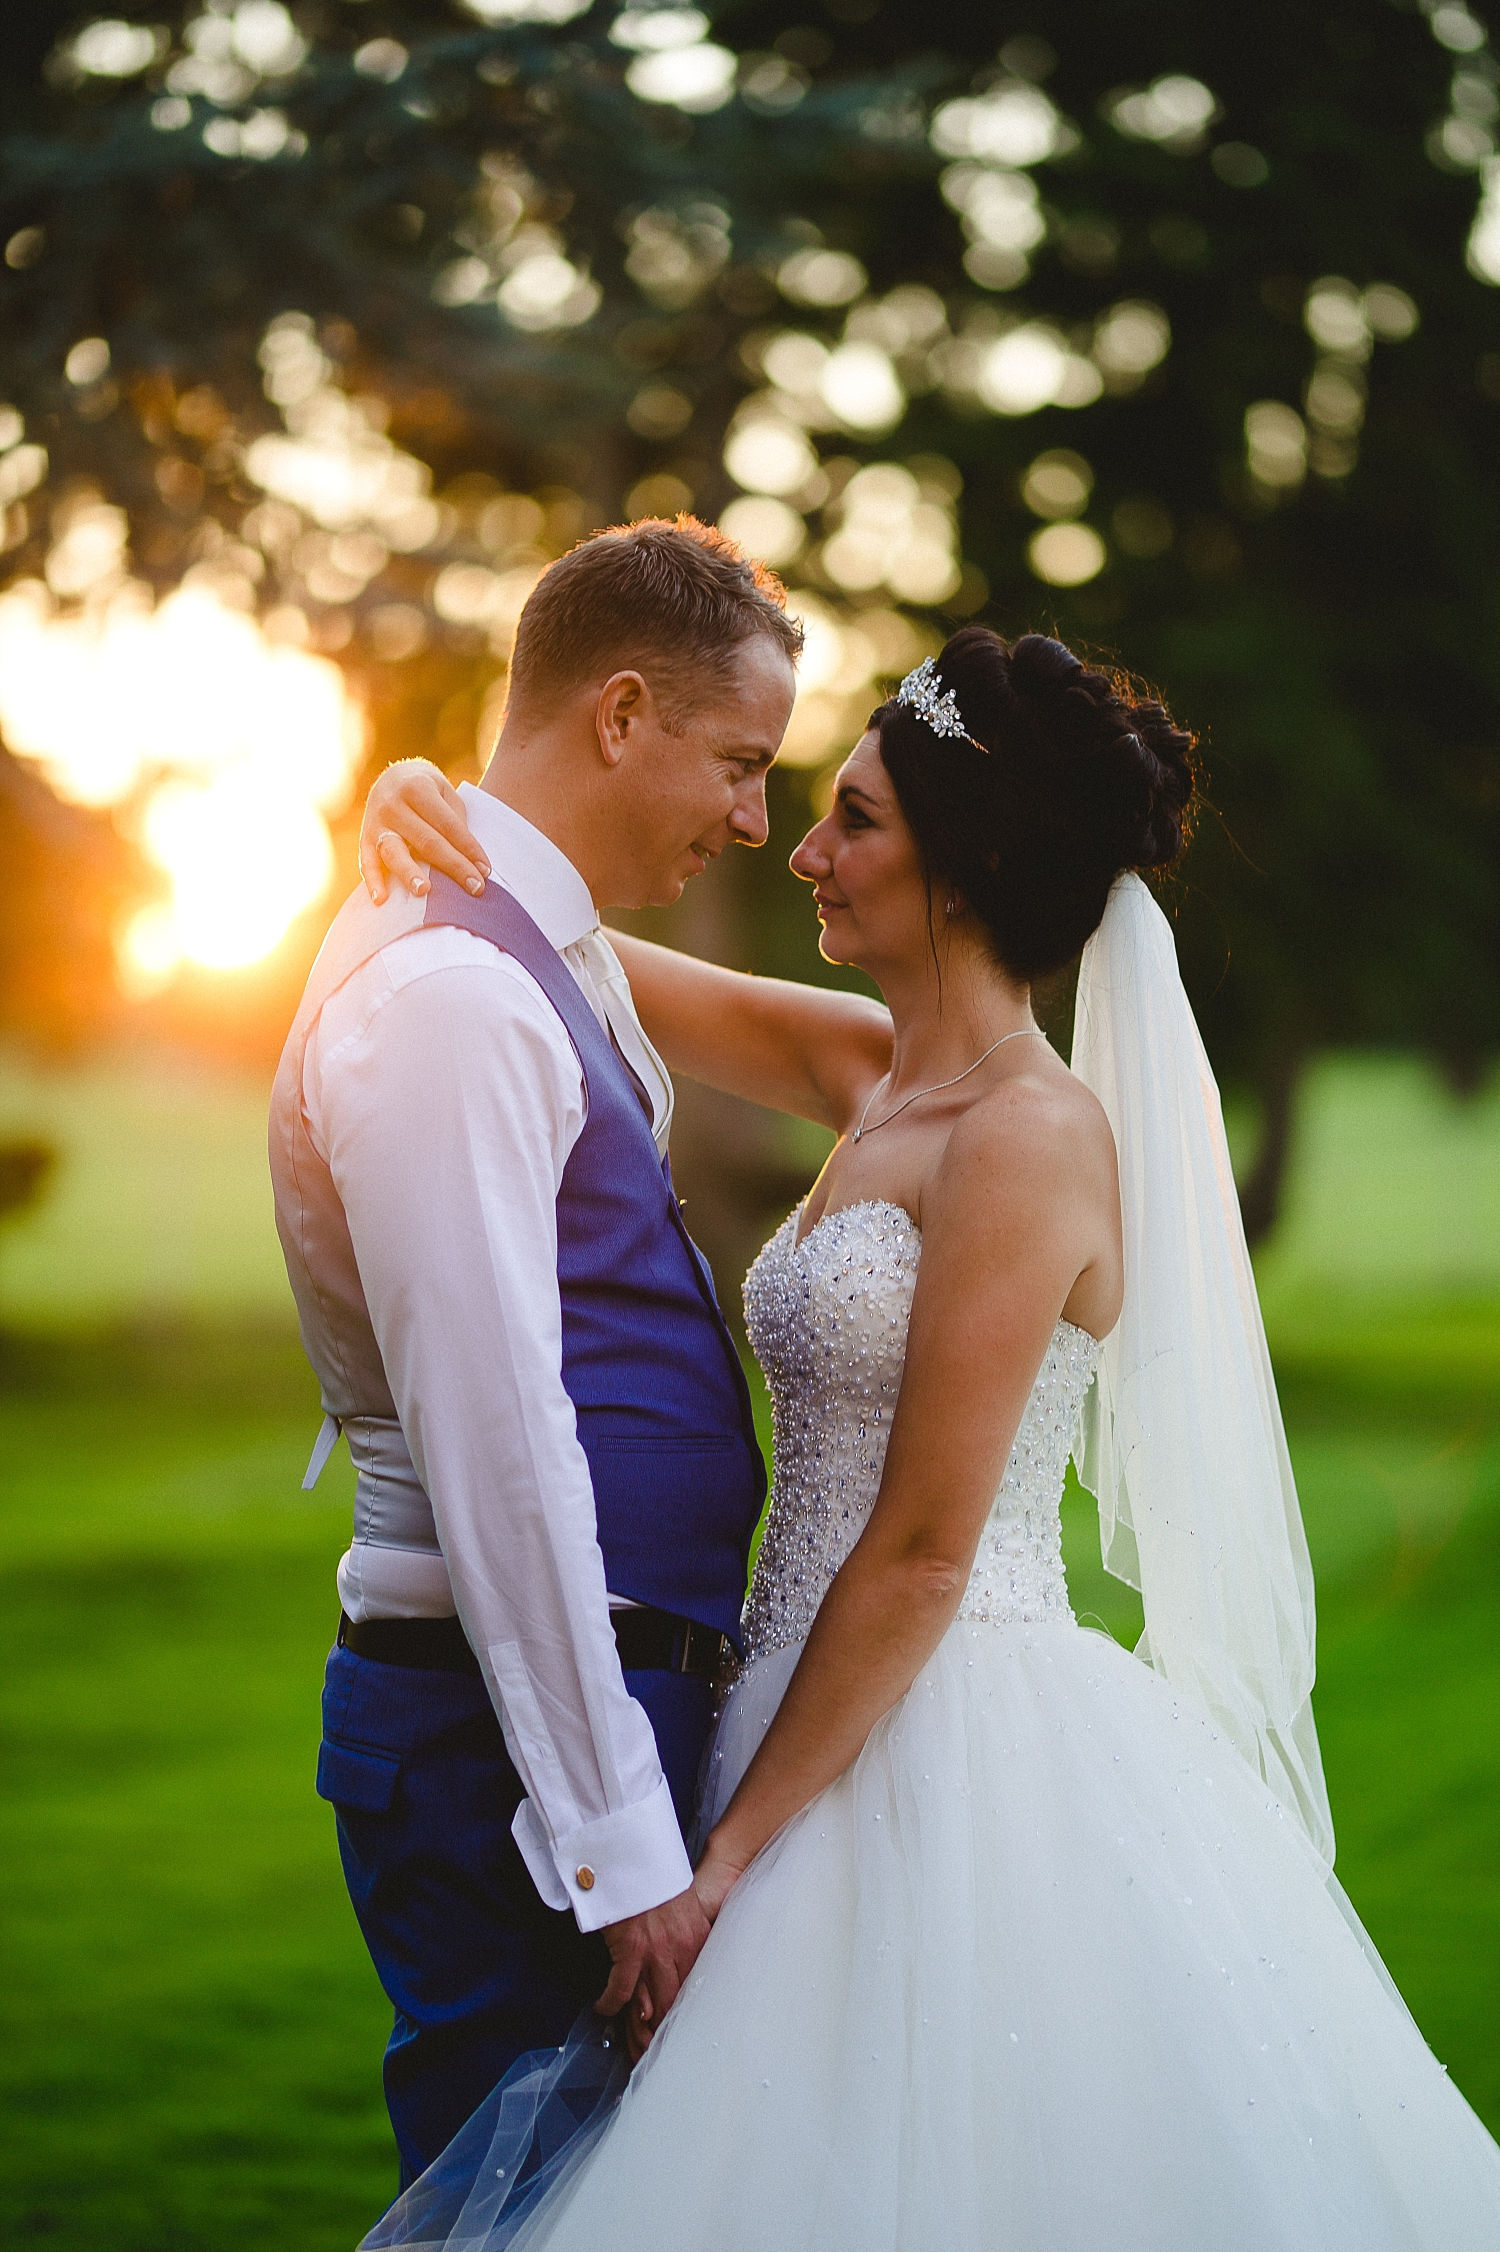 Gosfield Hall Essex Wedding - Portraits at Sunset